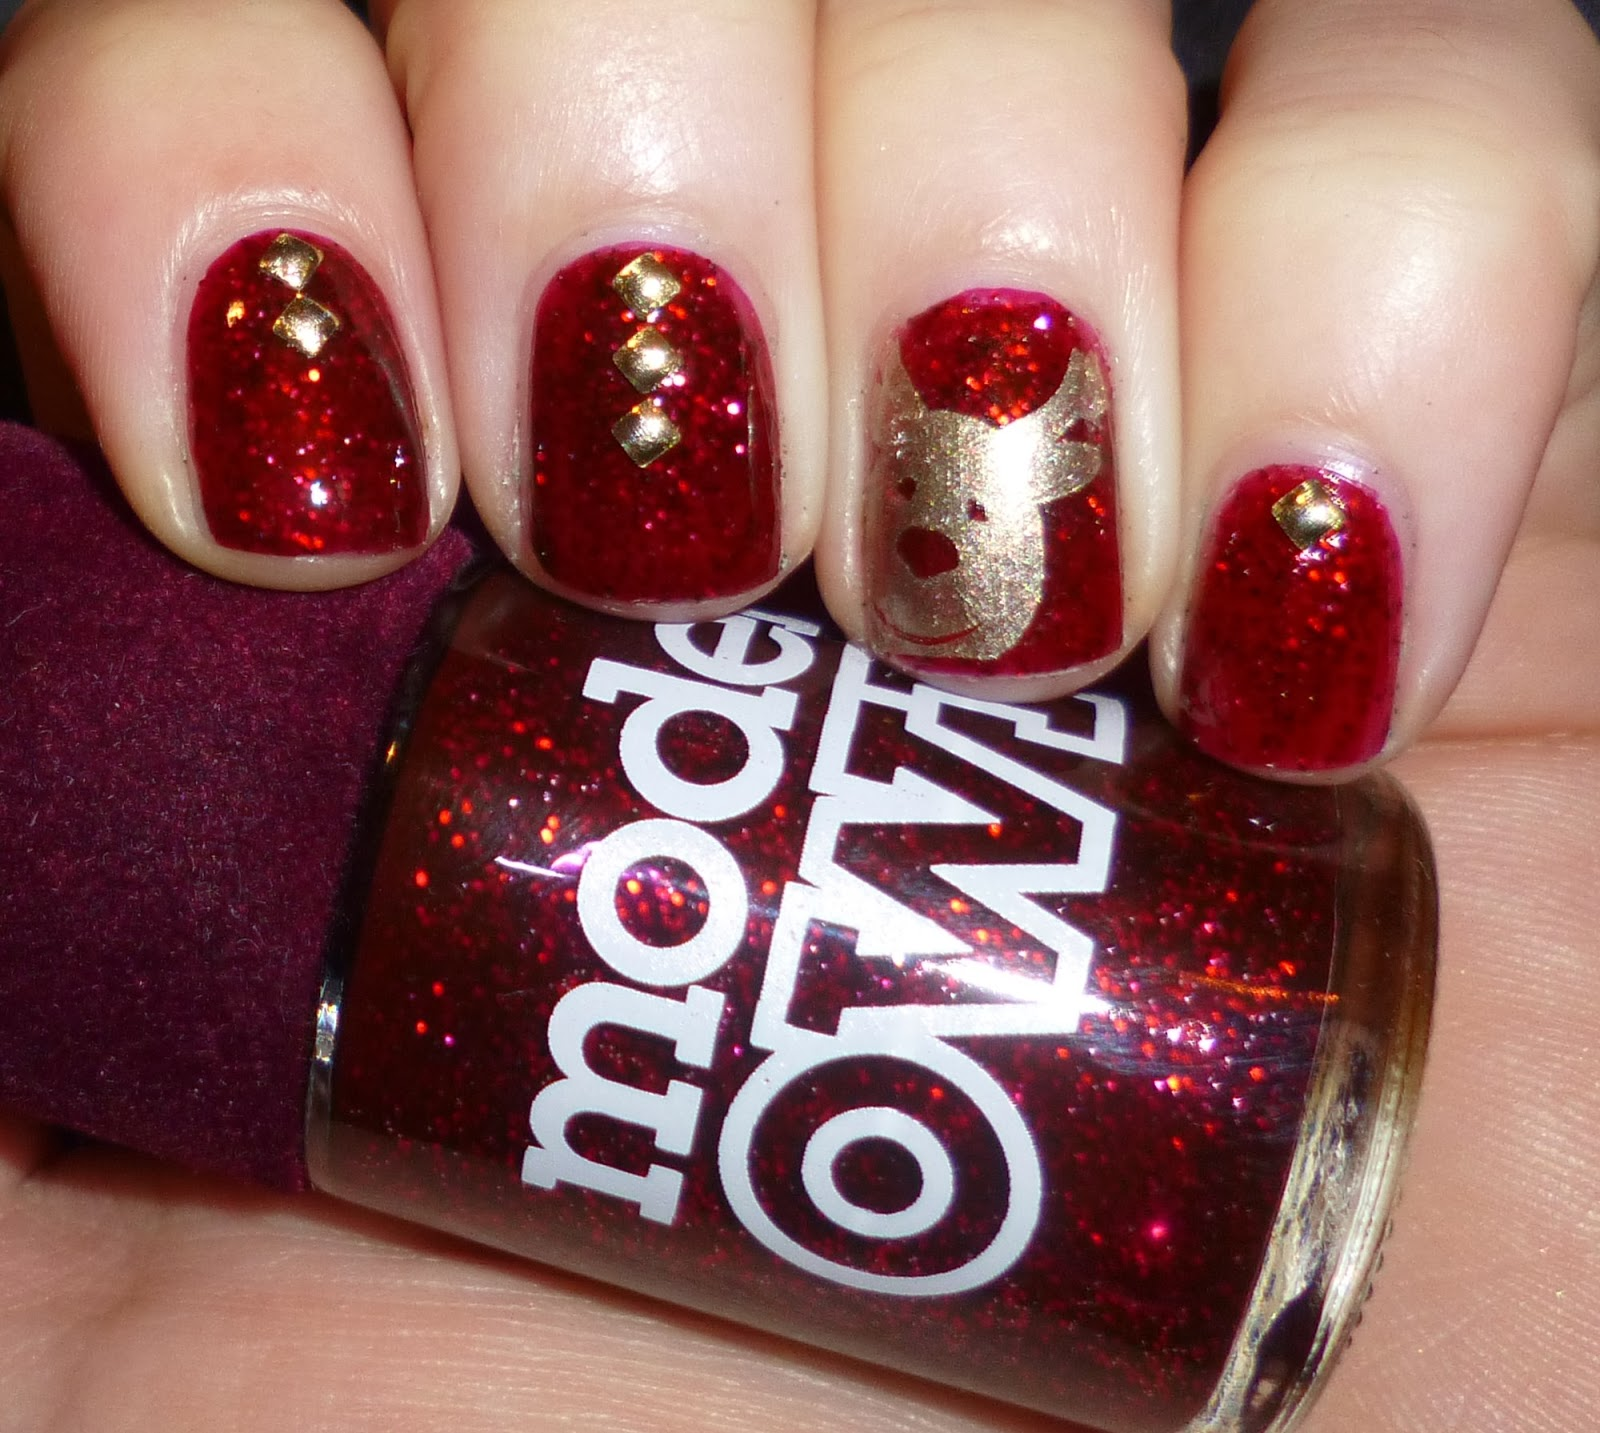 Lou is Perfectly Polished: Christmas Nails: Rudolph